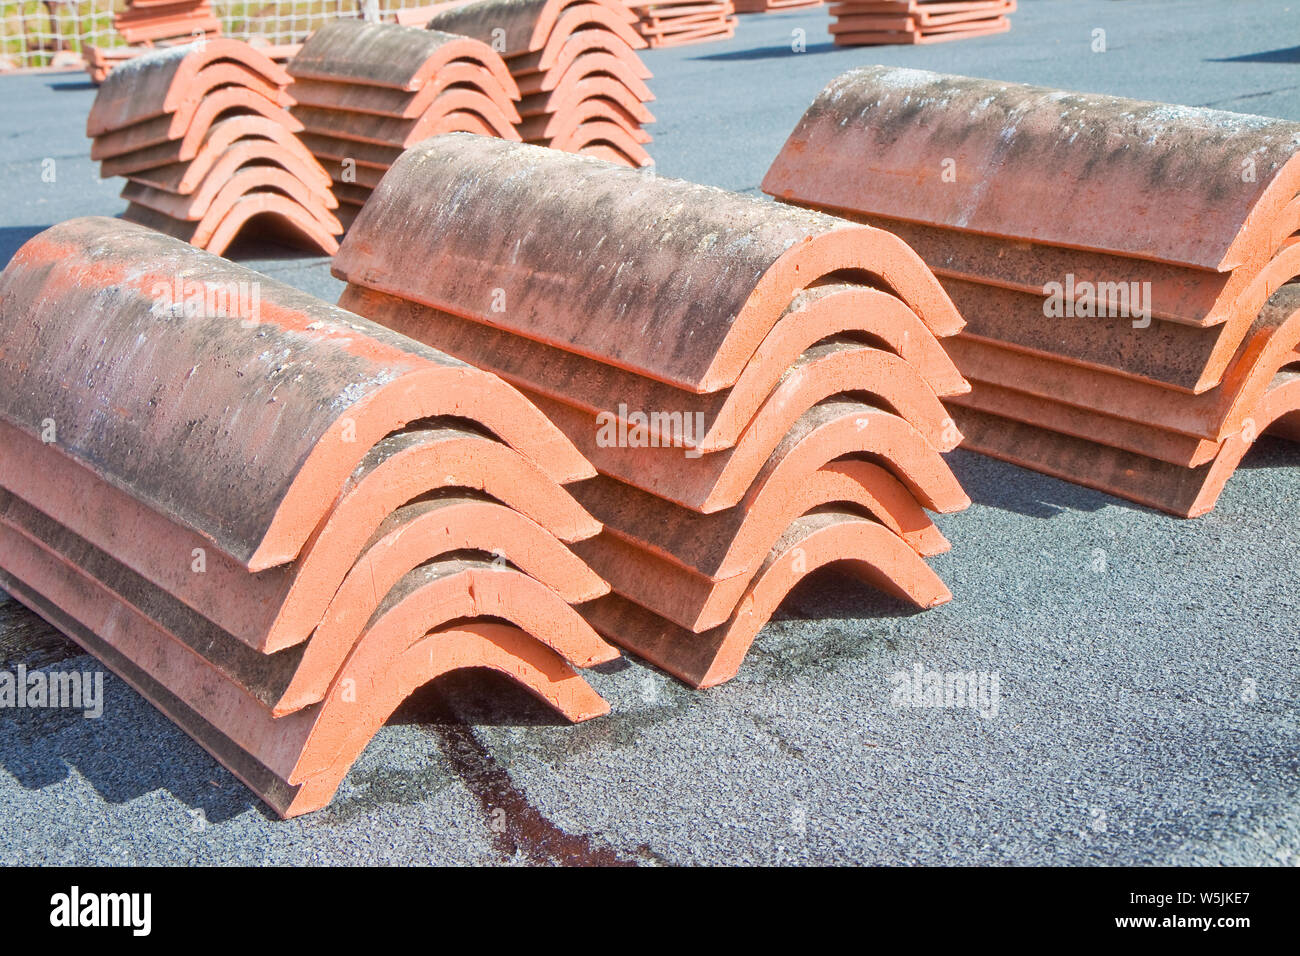 https www alamy com preparatory work for the construction of a italian roof covering with tiles piled over a dark waterproofing membrane image261639231 html